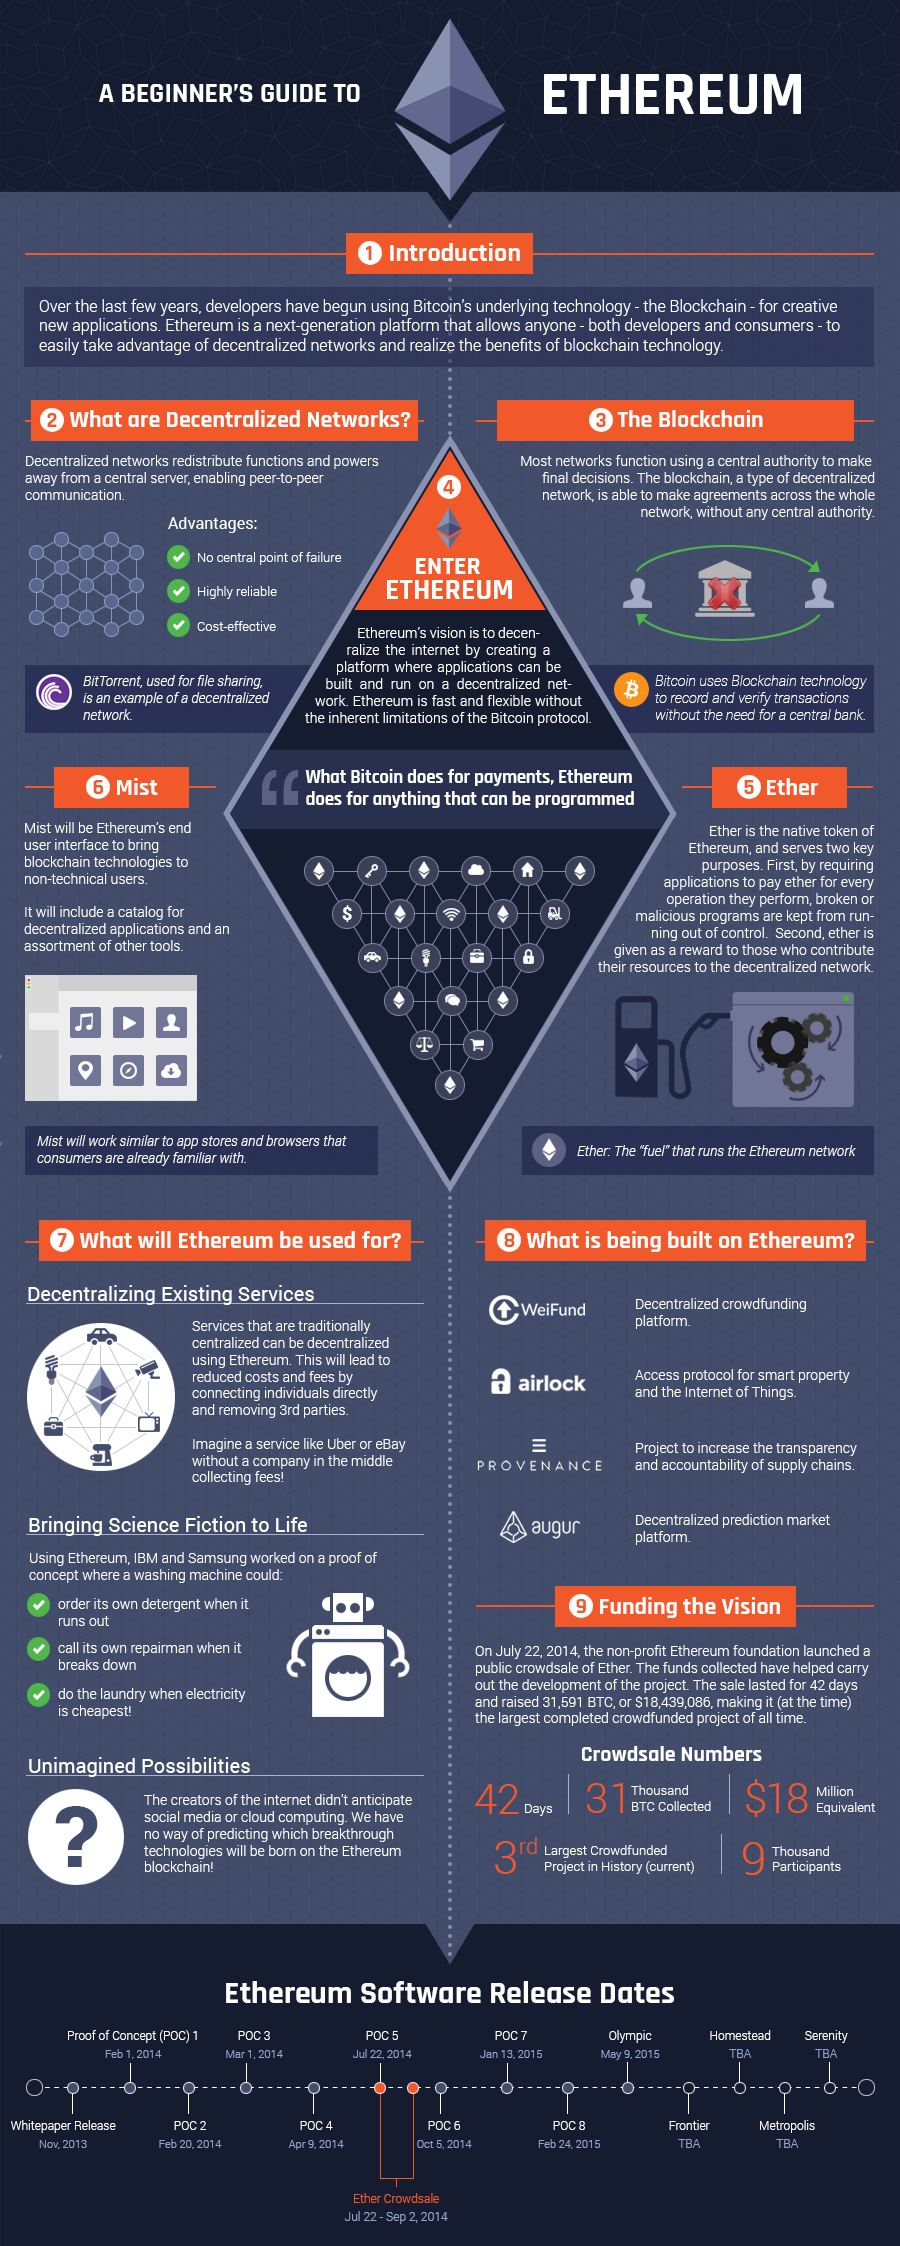 Ethereum Infographic Image - Beginners Guide